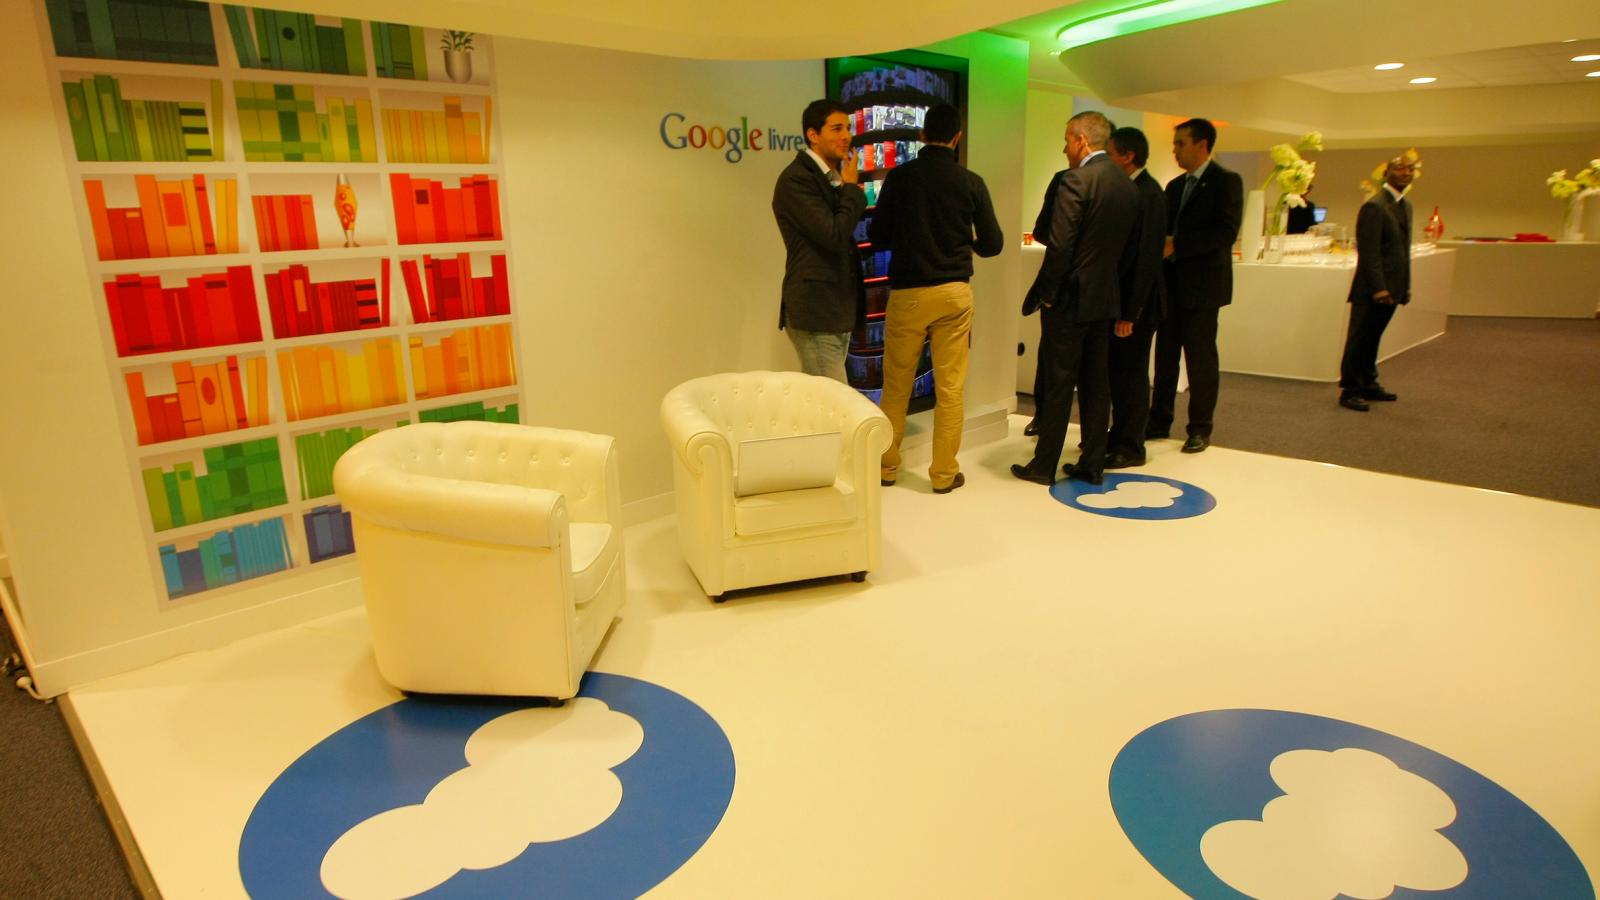 Google doubled bonuses for employee referrals and it didn't